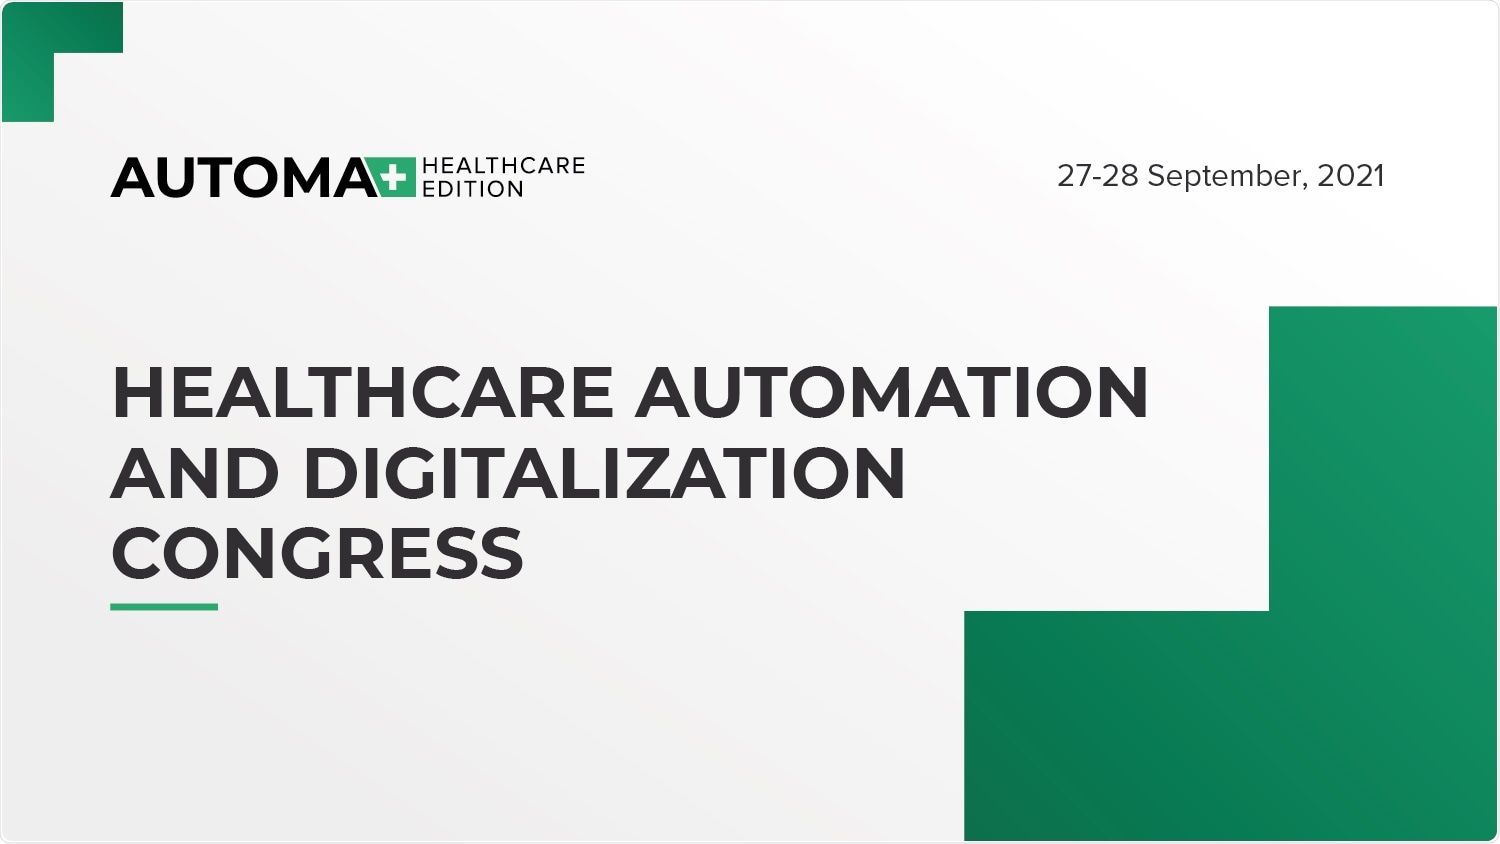 Healthcare Automation and Digitalization Congress focuses on accessible and affordable healthcare